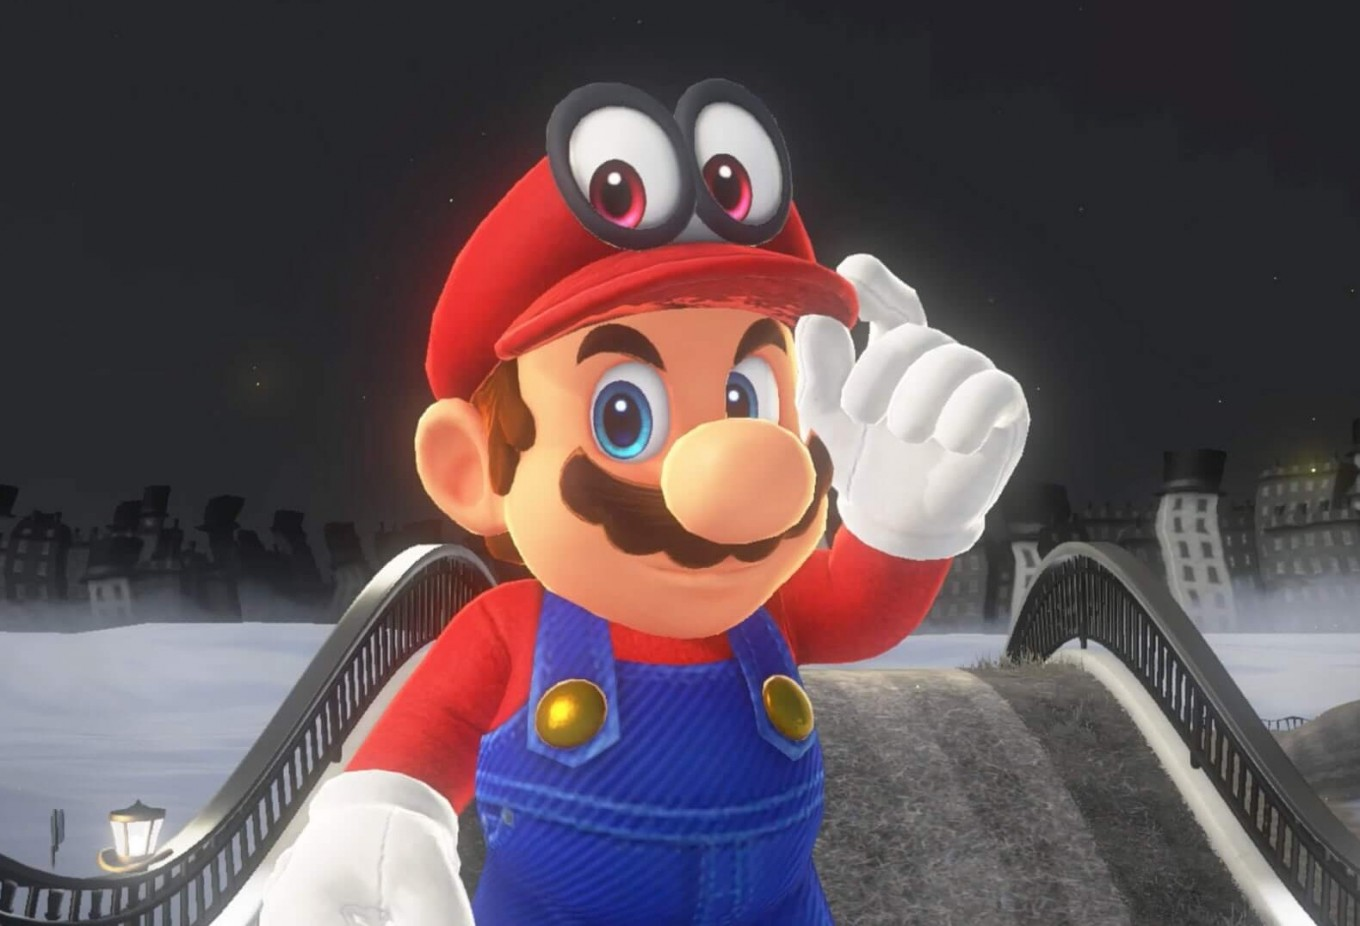 Super Mario may be heading back to the big screen